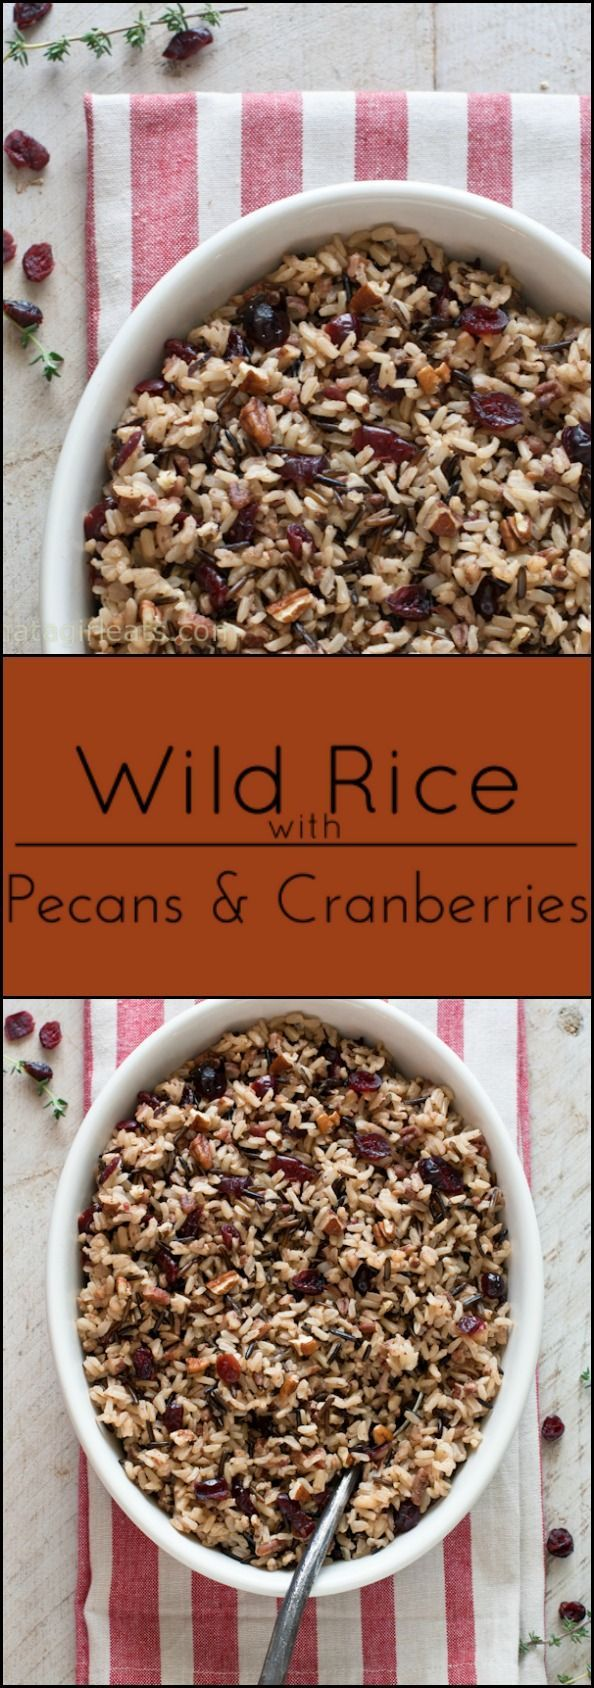 Cranberry Pecan Wild Rice makes a nice gluten-freealternative to stuffing. I make this Cranberry Pecan Wild Ricewhen I want something a little bit fancier than basicRice Pilaf or Roasted Potatoes. It pairs perfectly withSlow-cooker Cornish Game Hens with Grand Marnier Sauce. But italso just feels like the perfect American side dish, with crunchy toasted pecans...Read More »